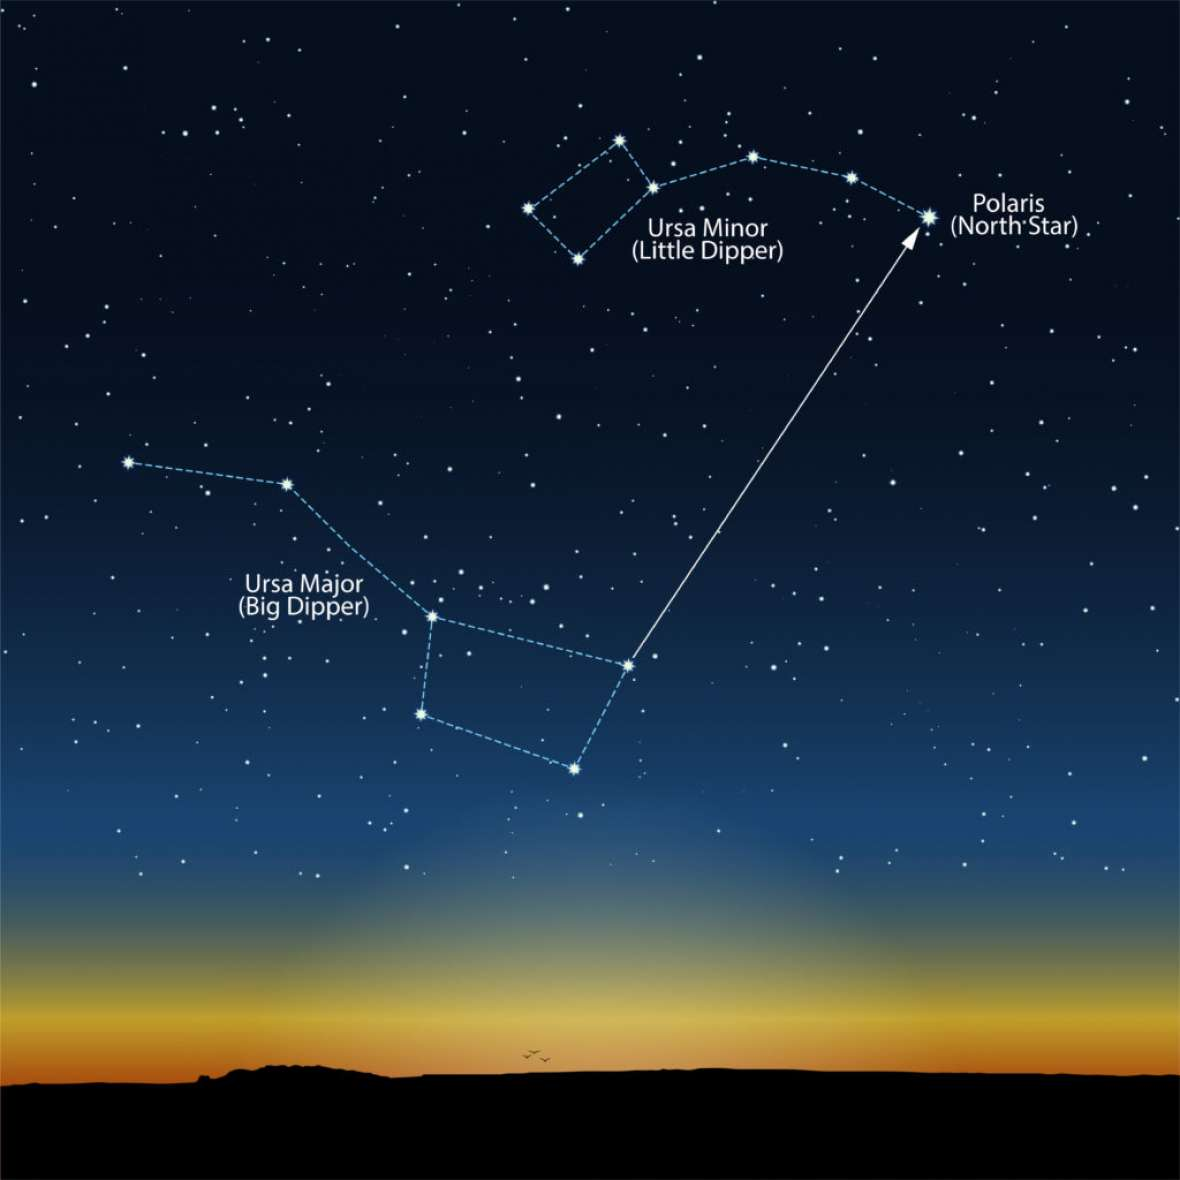 The North Star and the dippers in the night sky. Science Sparks